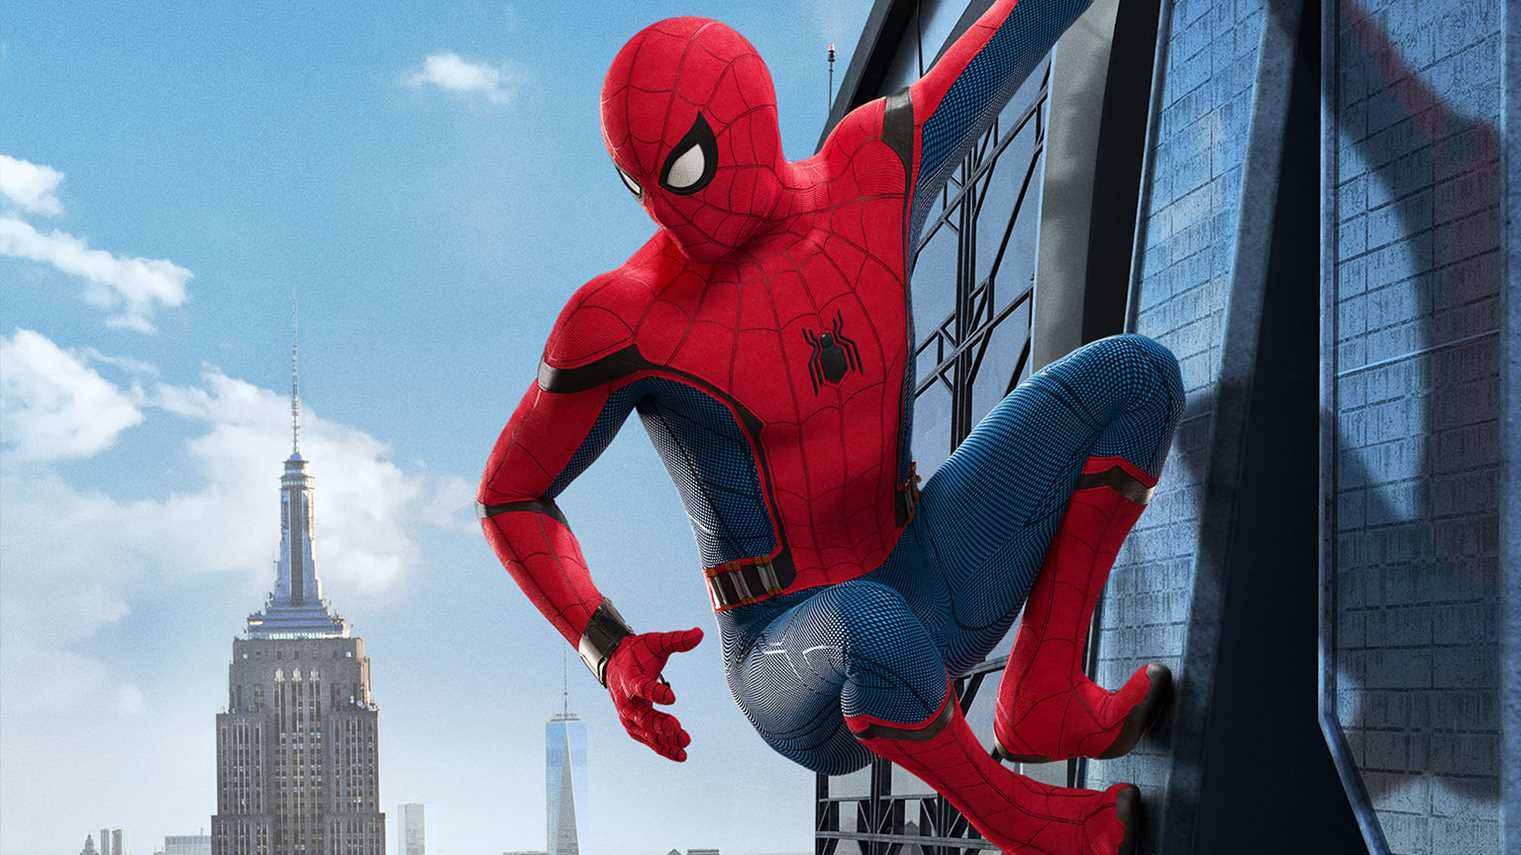 Spider Man: Homecoming